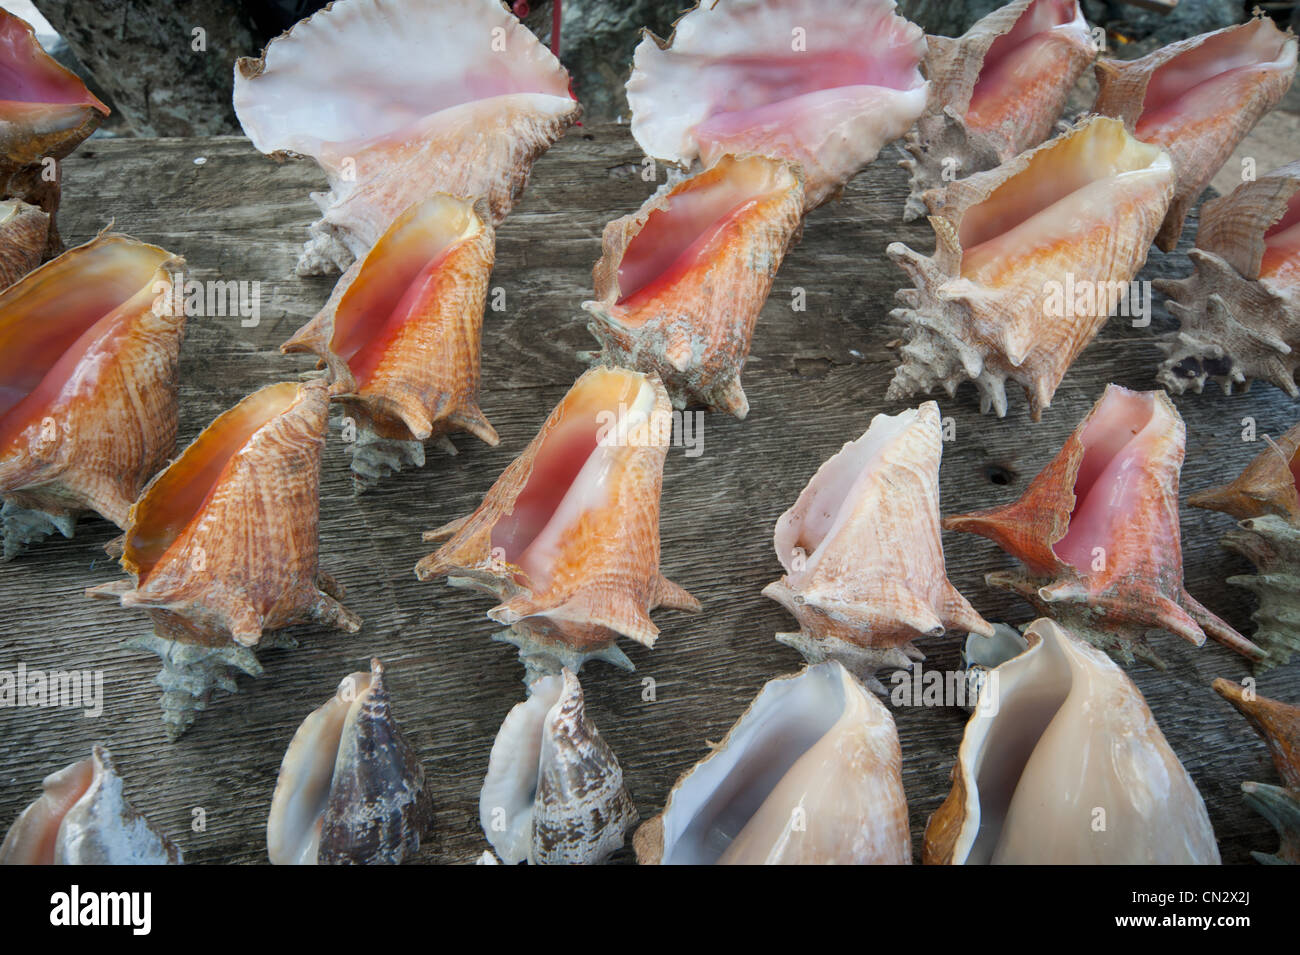 Conch shells - Stock Image